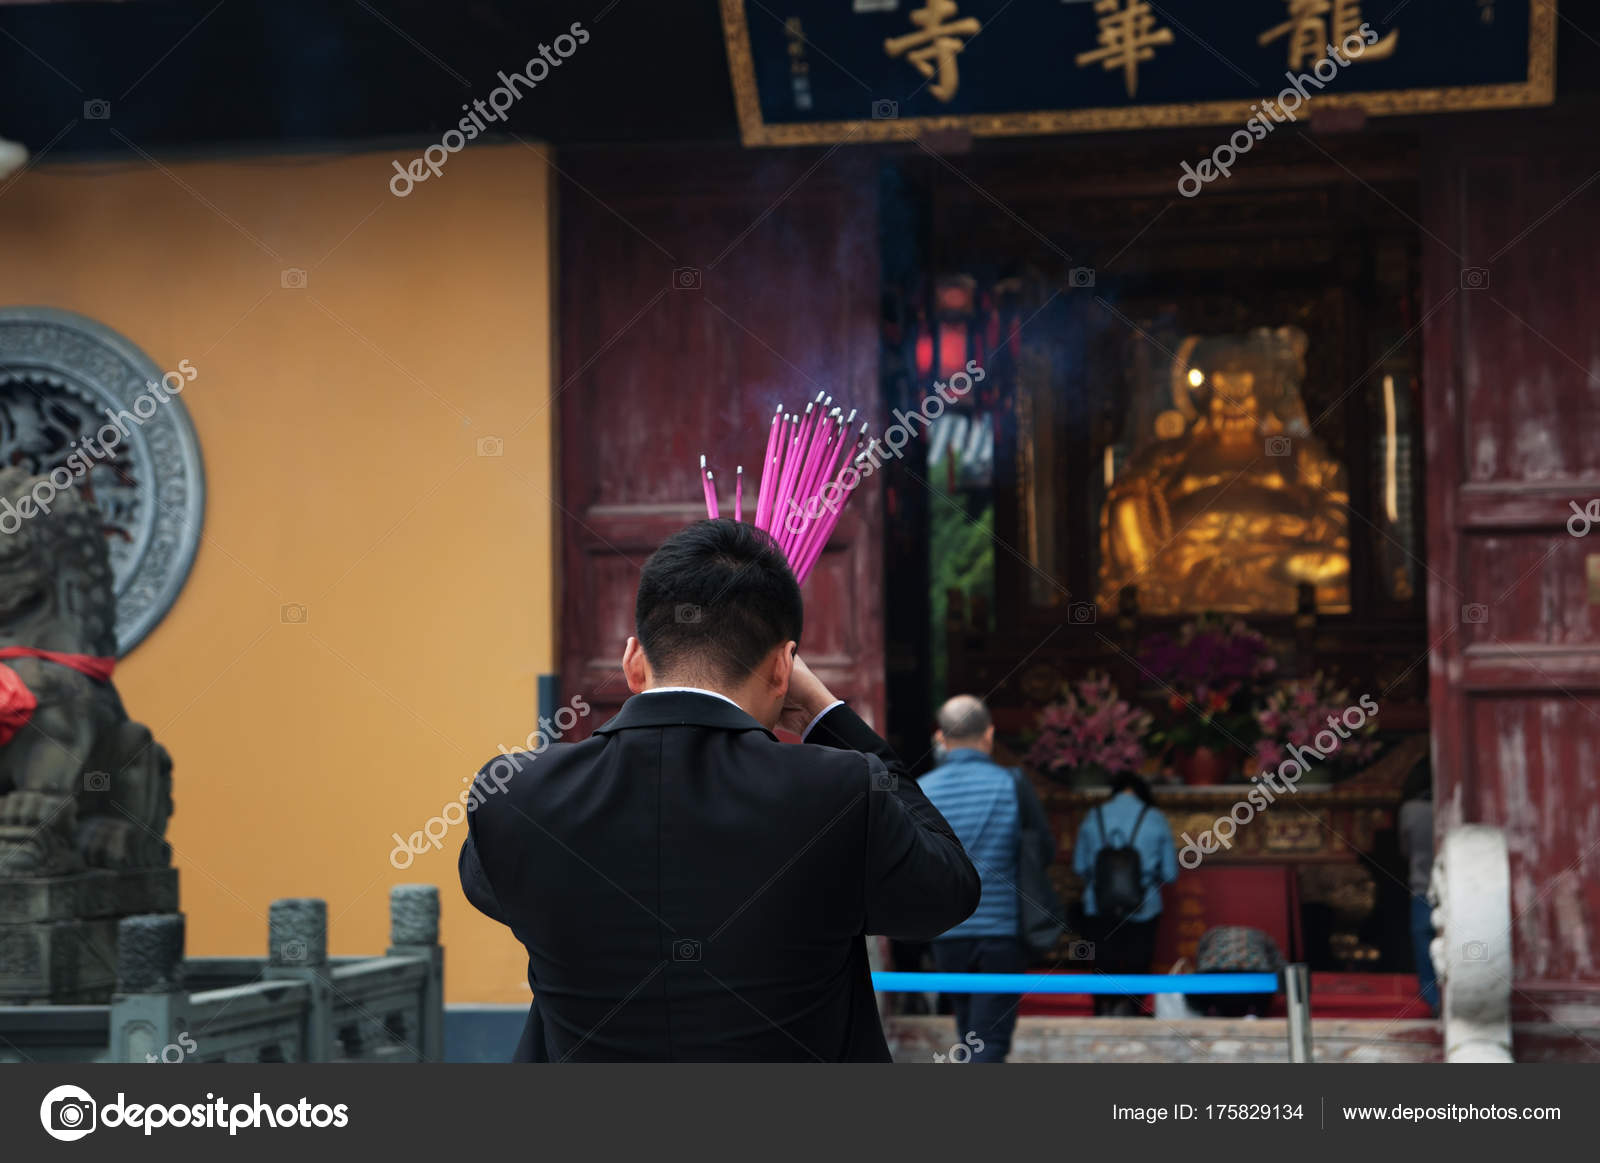 Chinese Man Is Praying At A Buddhist Temple And Burning Incense Sticks Stock Editorial Photo C Eteri 88 175829134